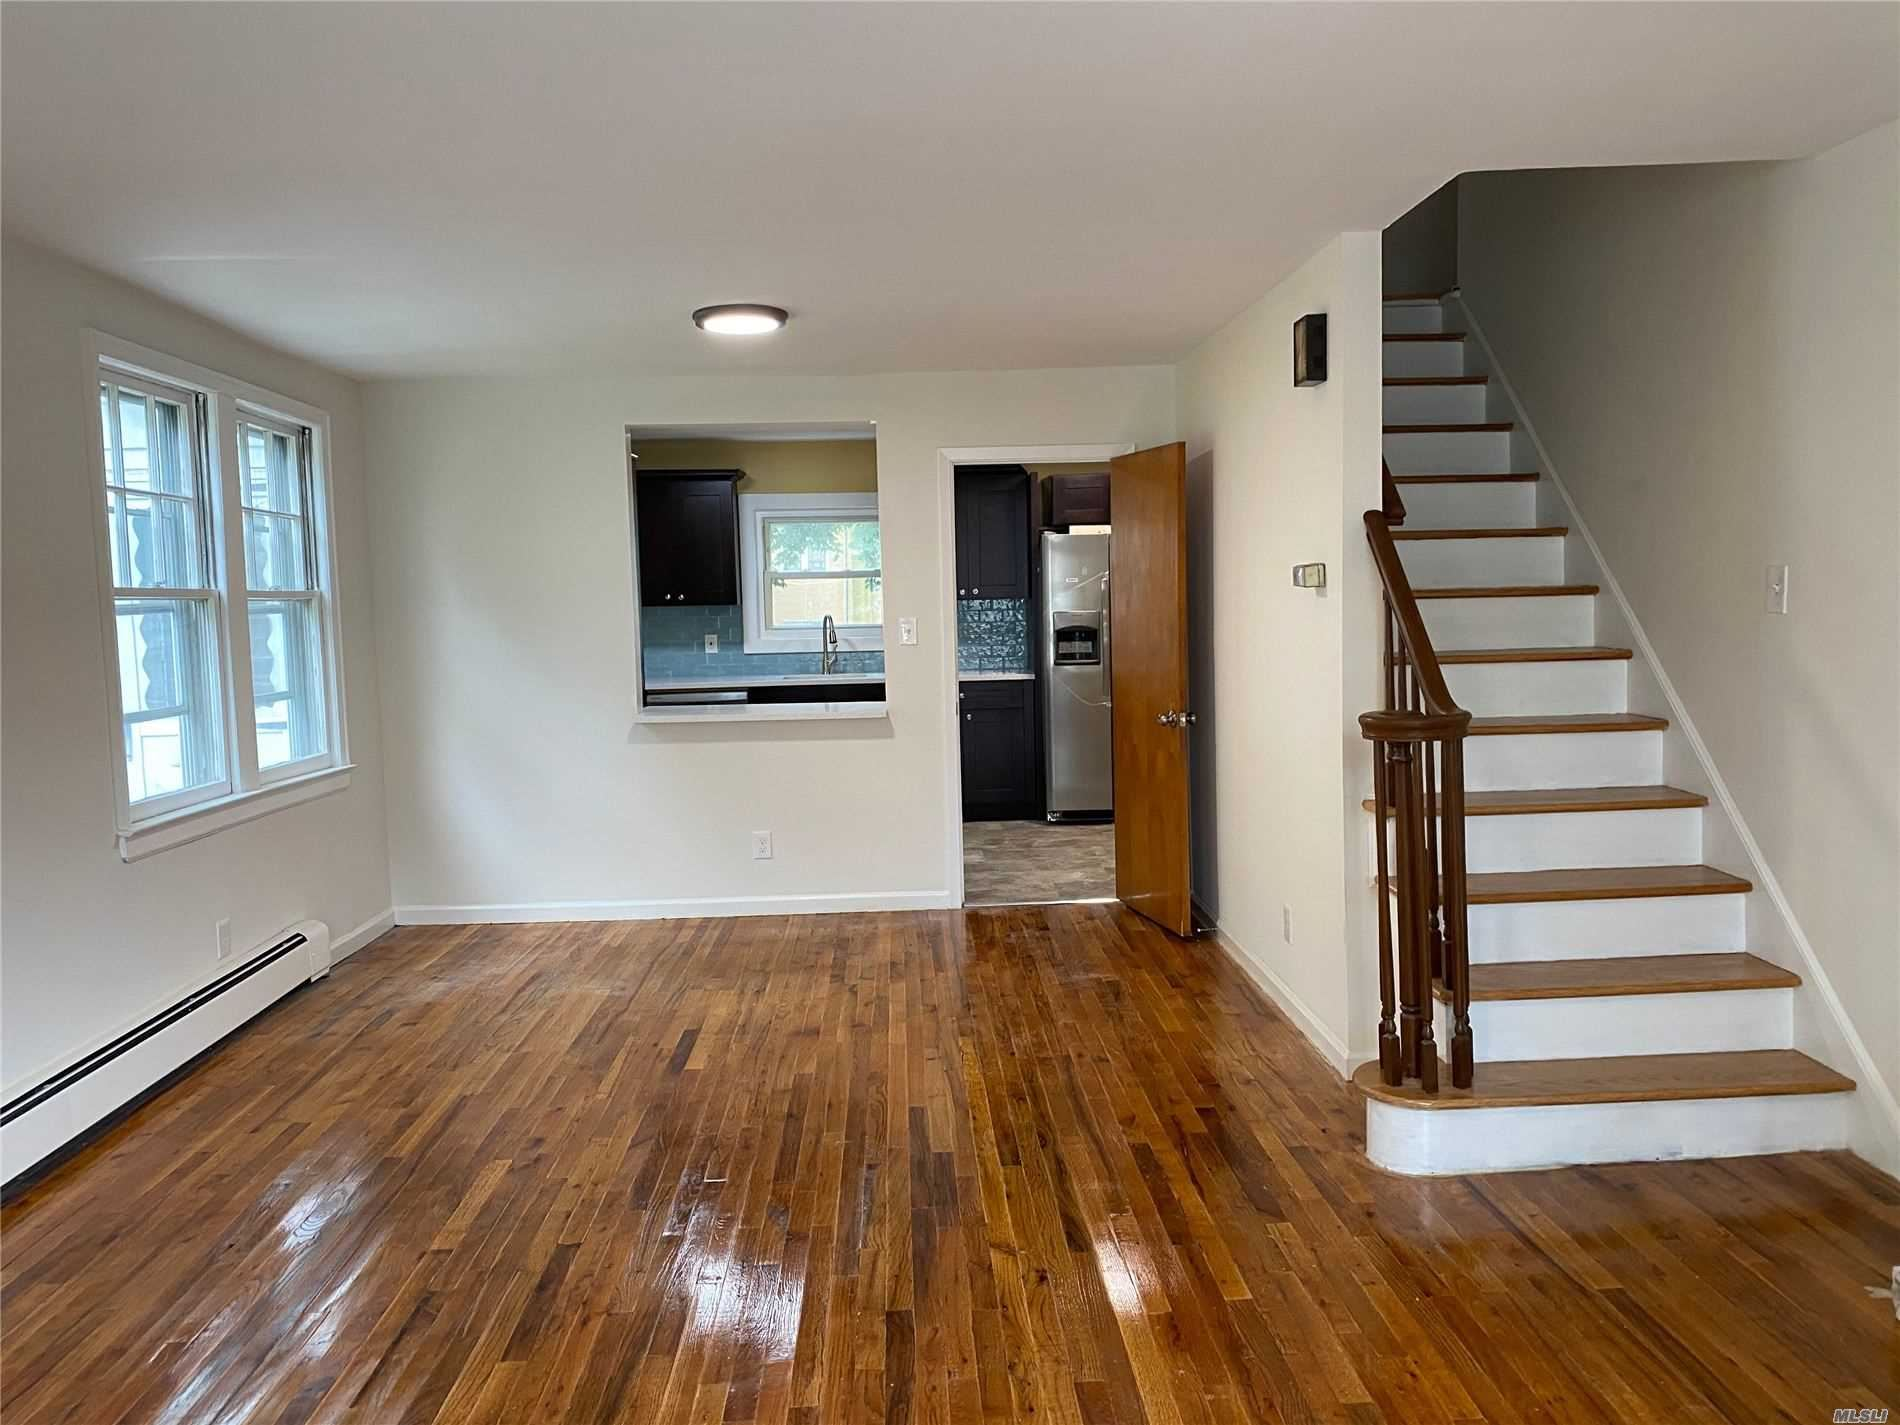 77-12 66th Drive, Middle Village, NY 11379 - MLS#: 3244491